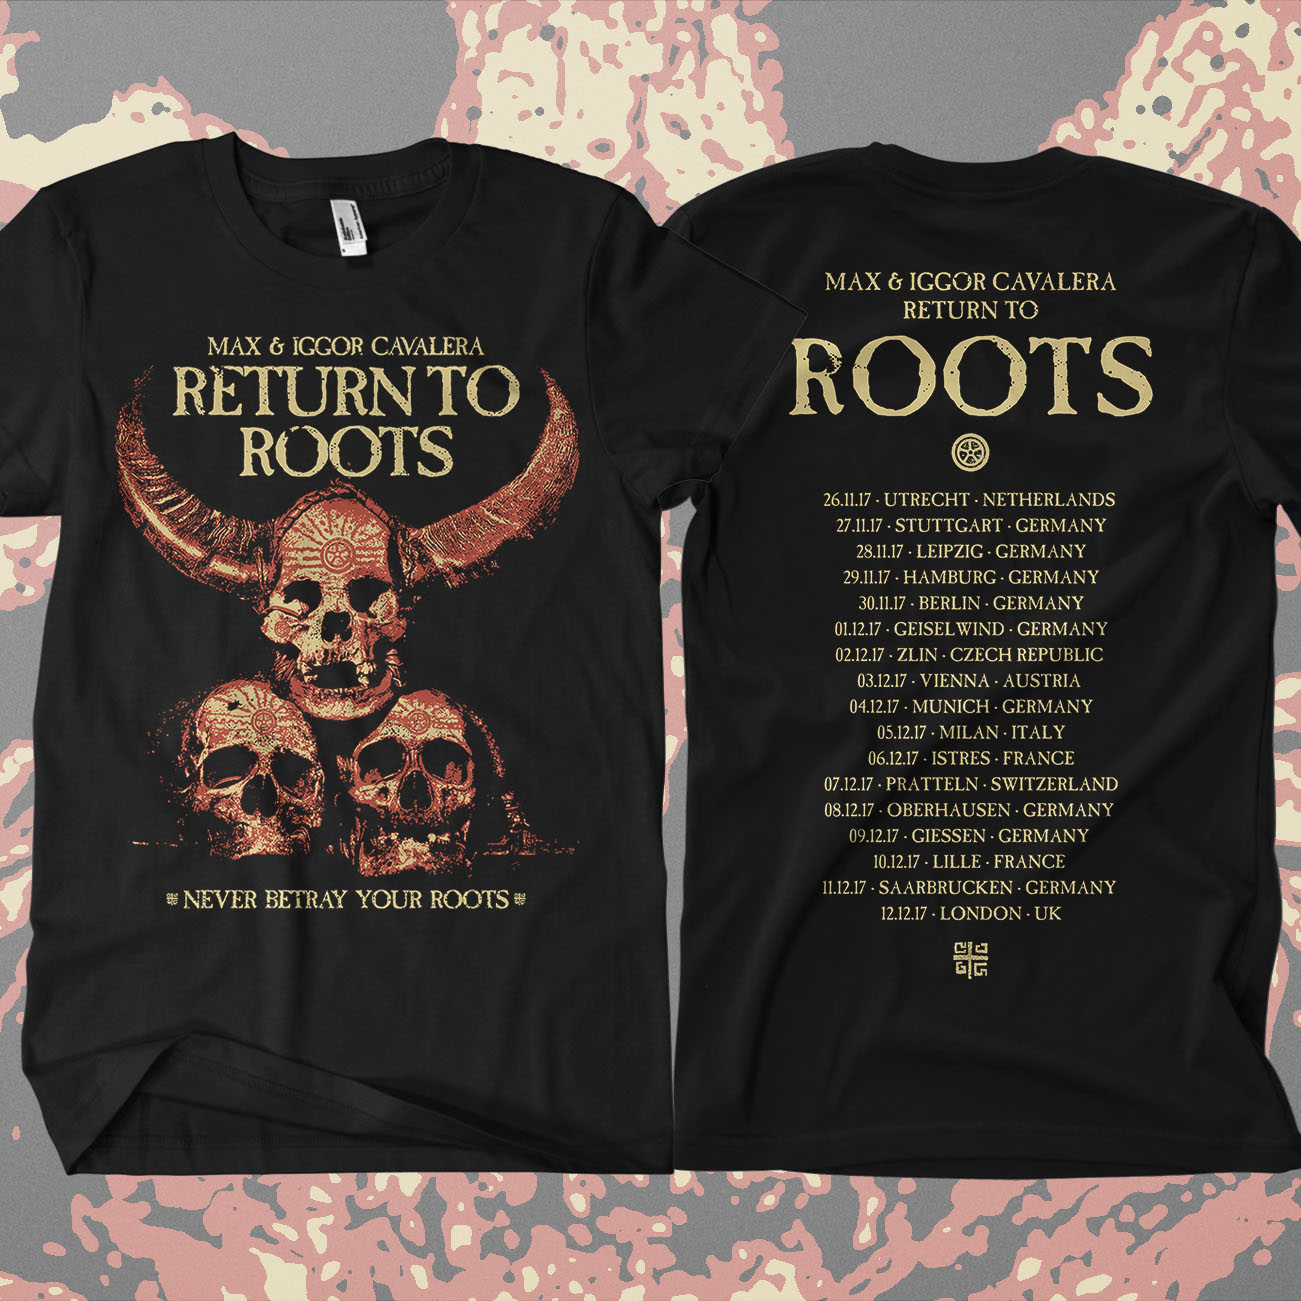 Return to Roots - 'Never Betray Your Roots' T-Shirt - Soulfly